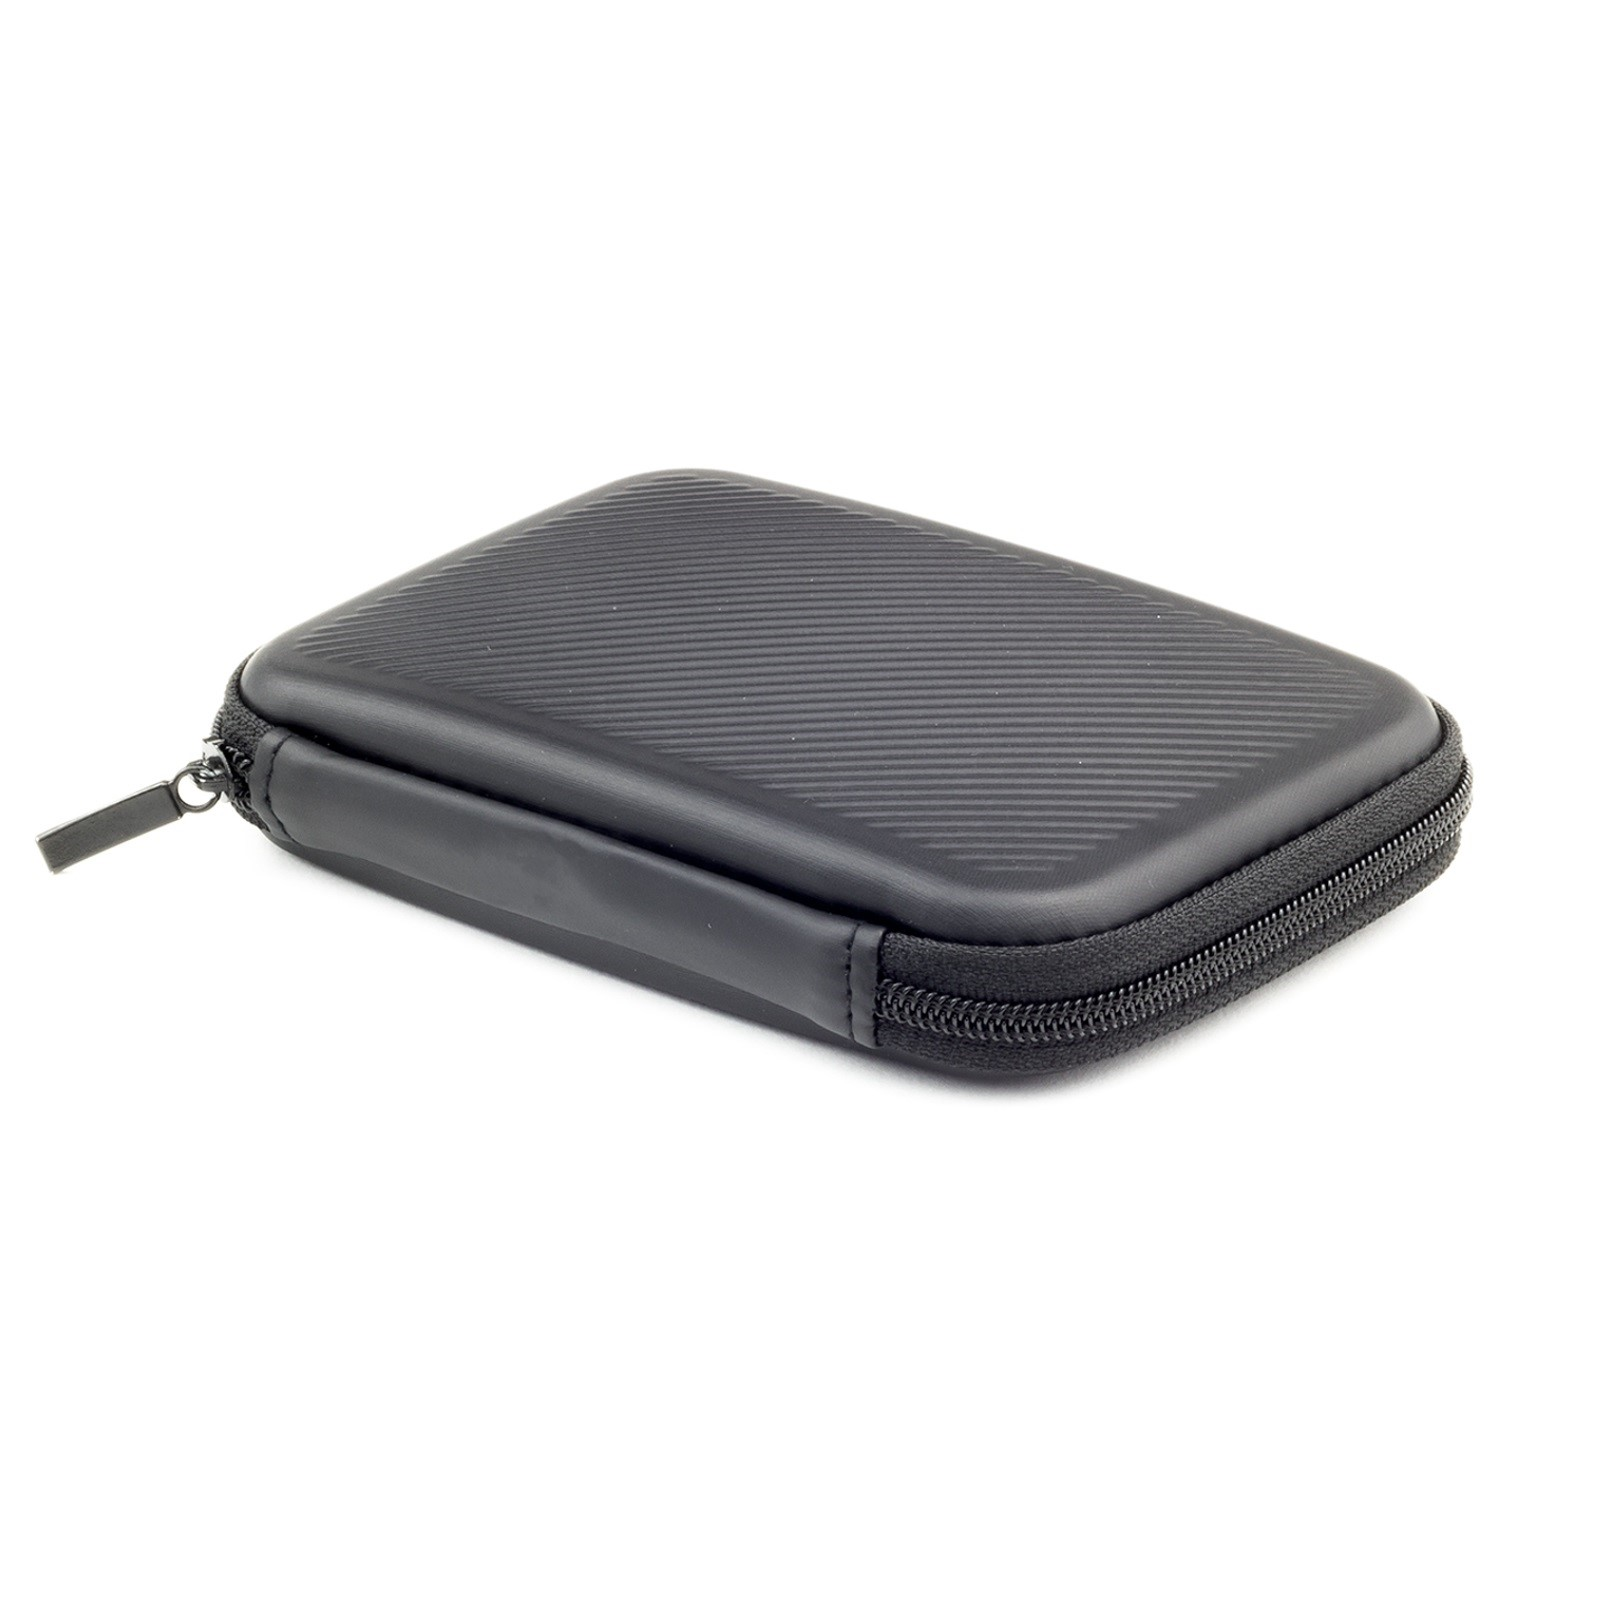 hard wallet for tomtom sat nav case start go 5200 520 52. Black Bedroom Furniture Sets. Home Design Ideas